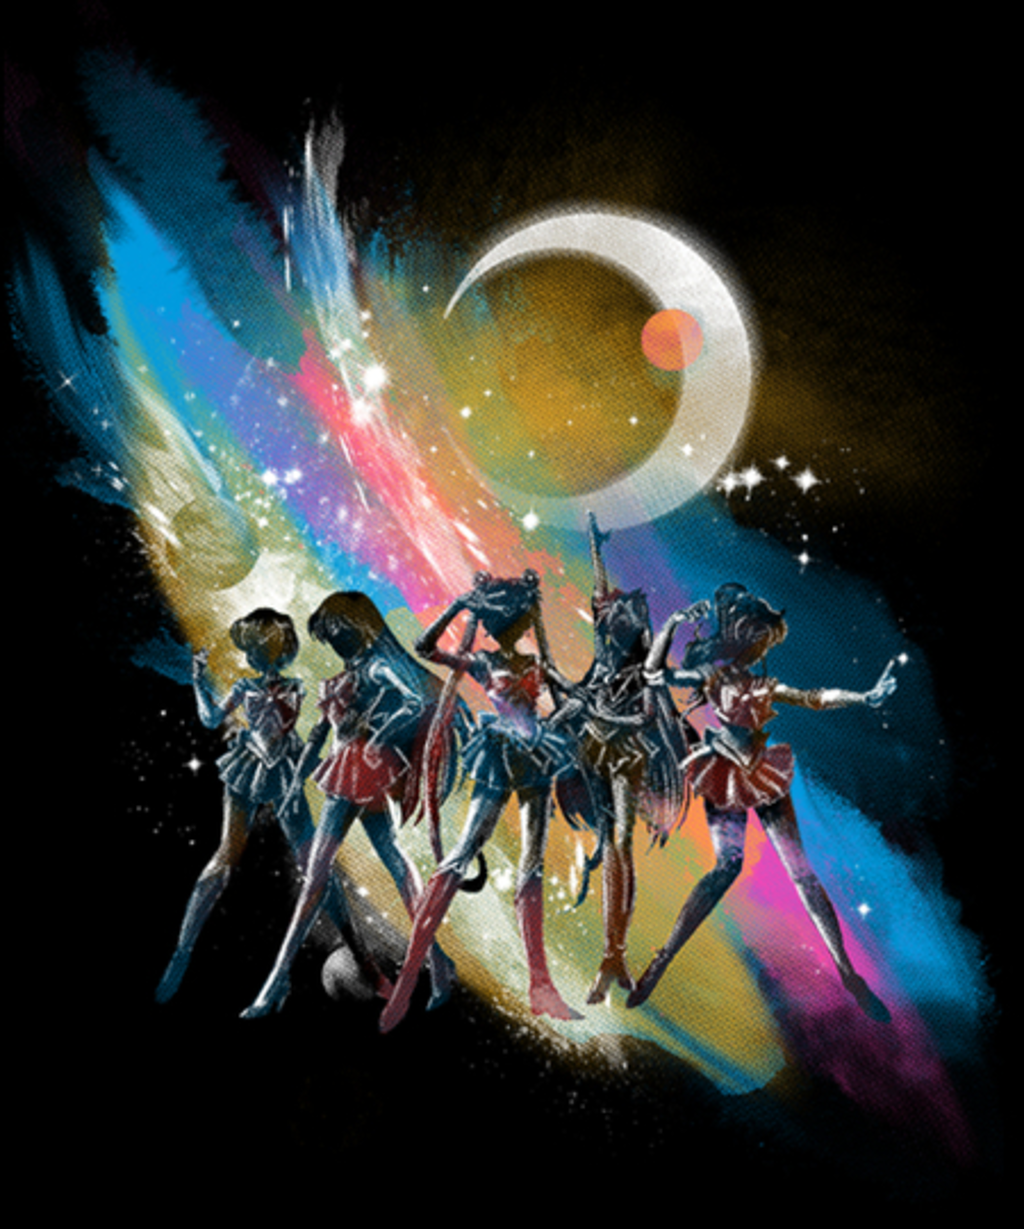 Qwertee: pretty guardians of the galaxy